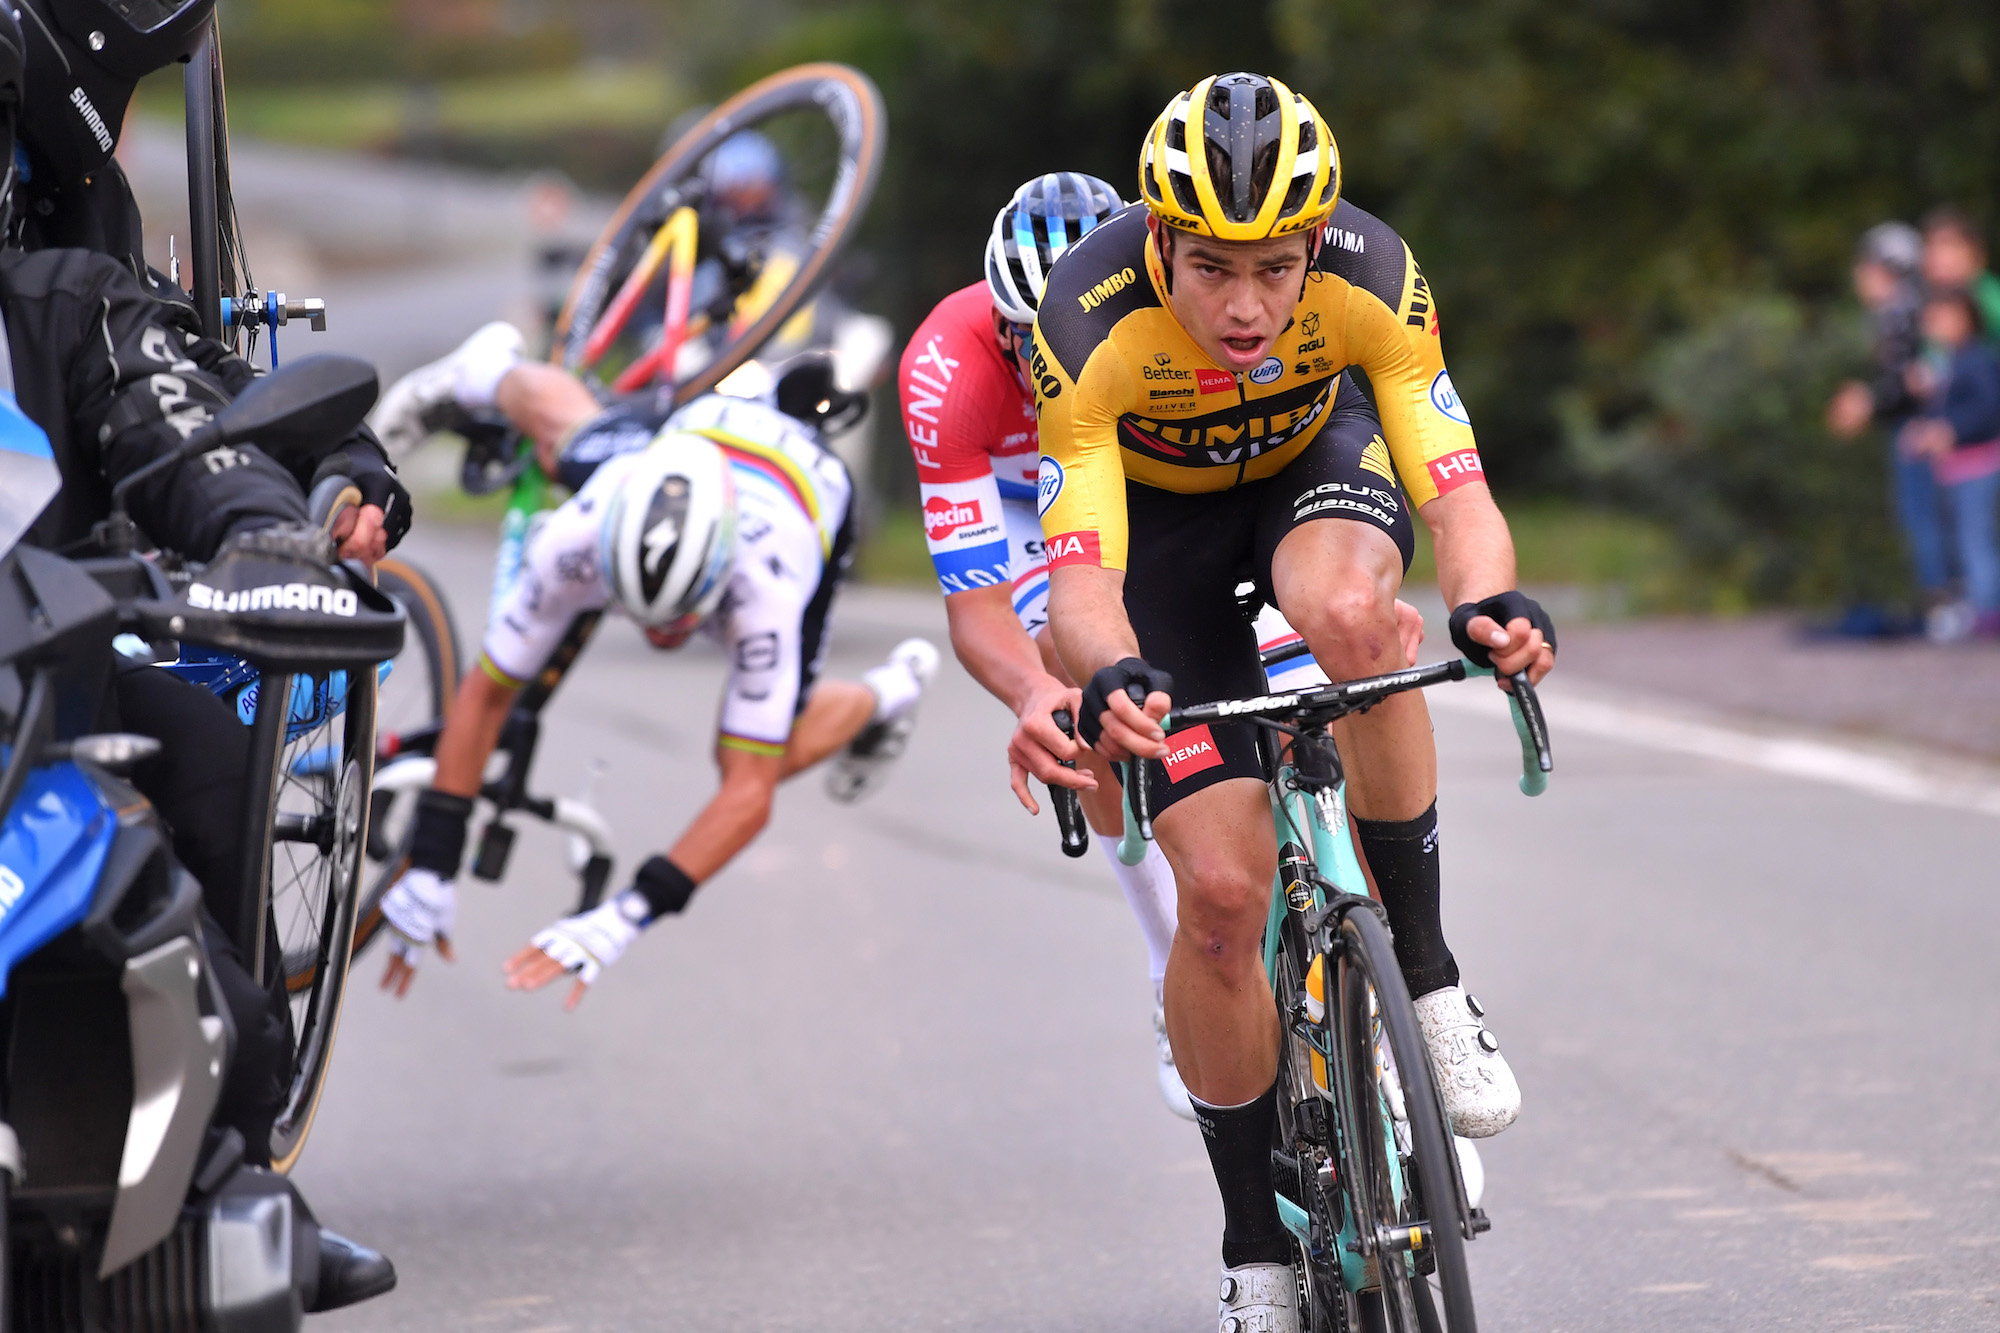 Julian Alaphilippe crashes out of the Tour of Flanders 2020 - Cycling Weekly